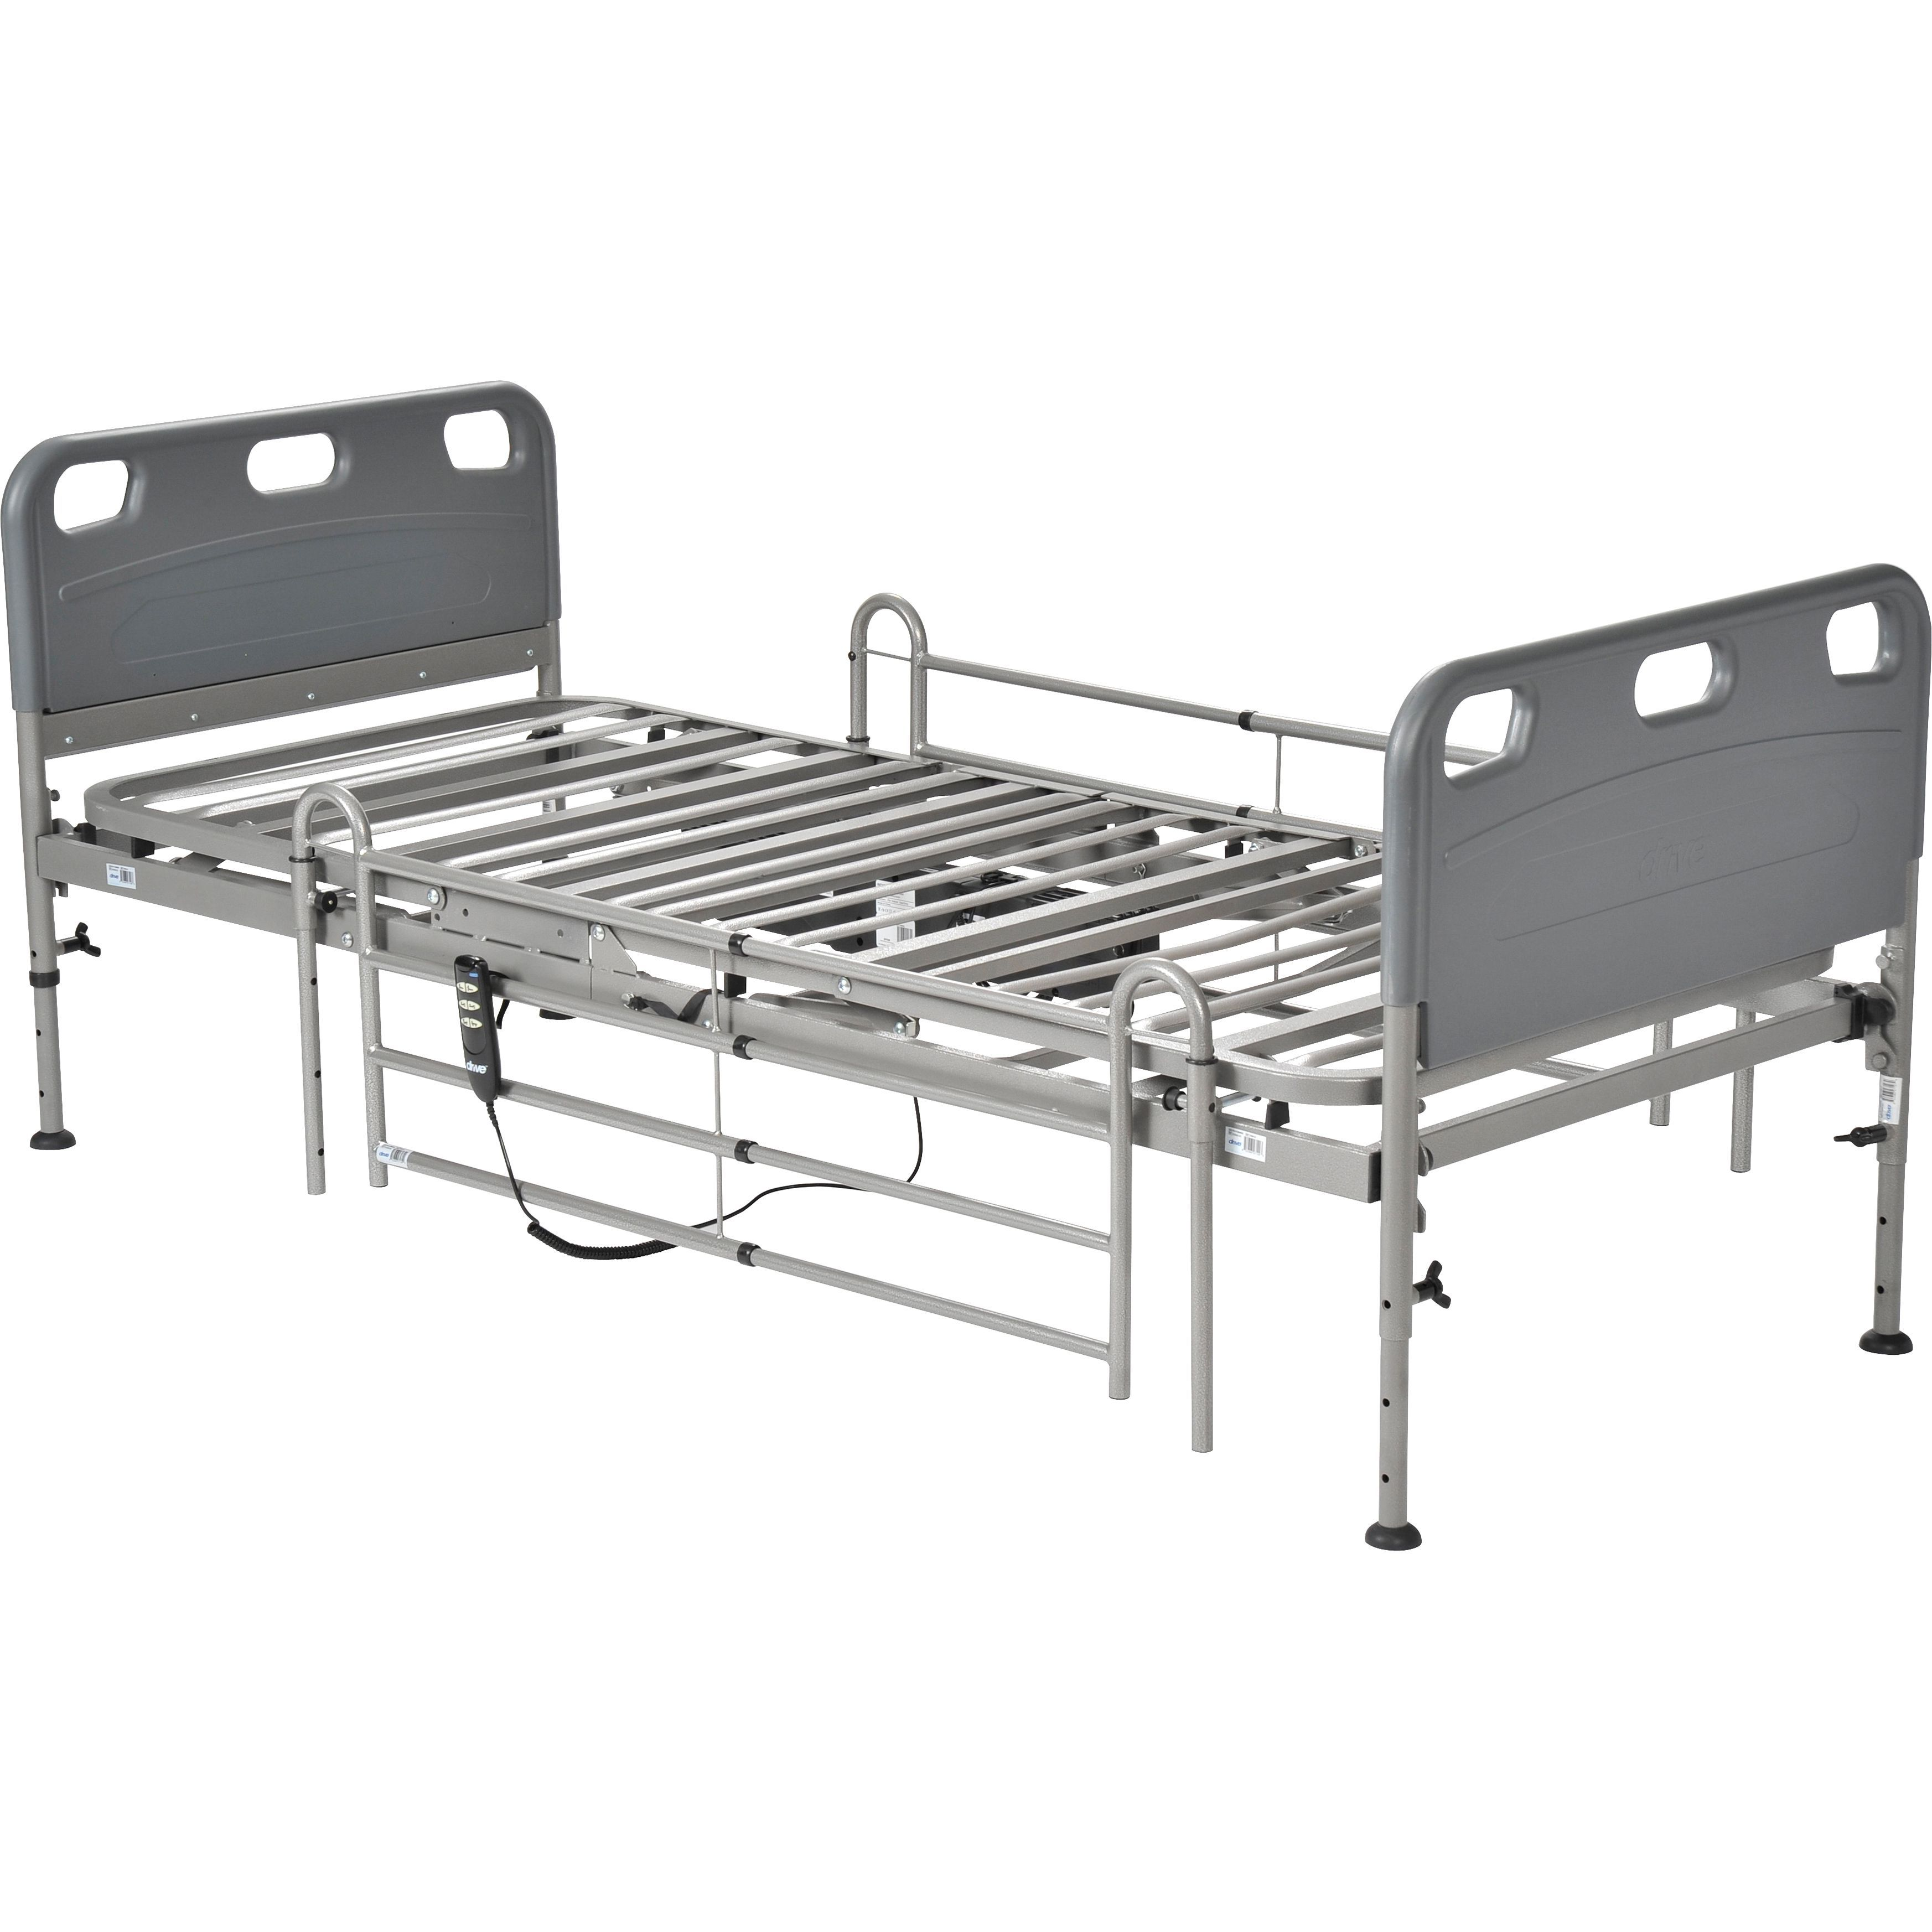 drive medical competitor semi electric bed frame with half rails no mattress silver steel - Electric Bed Frame